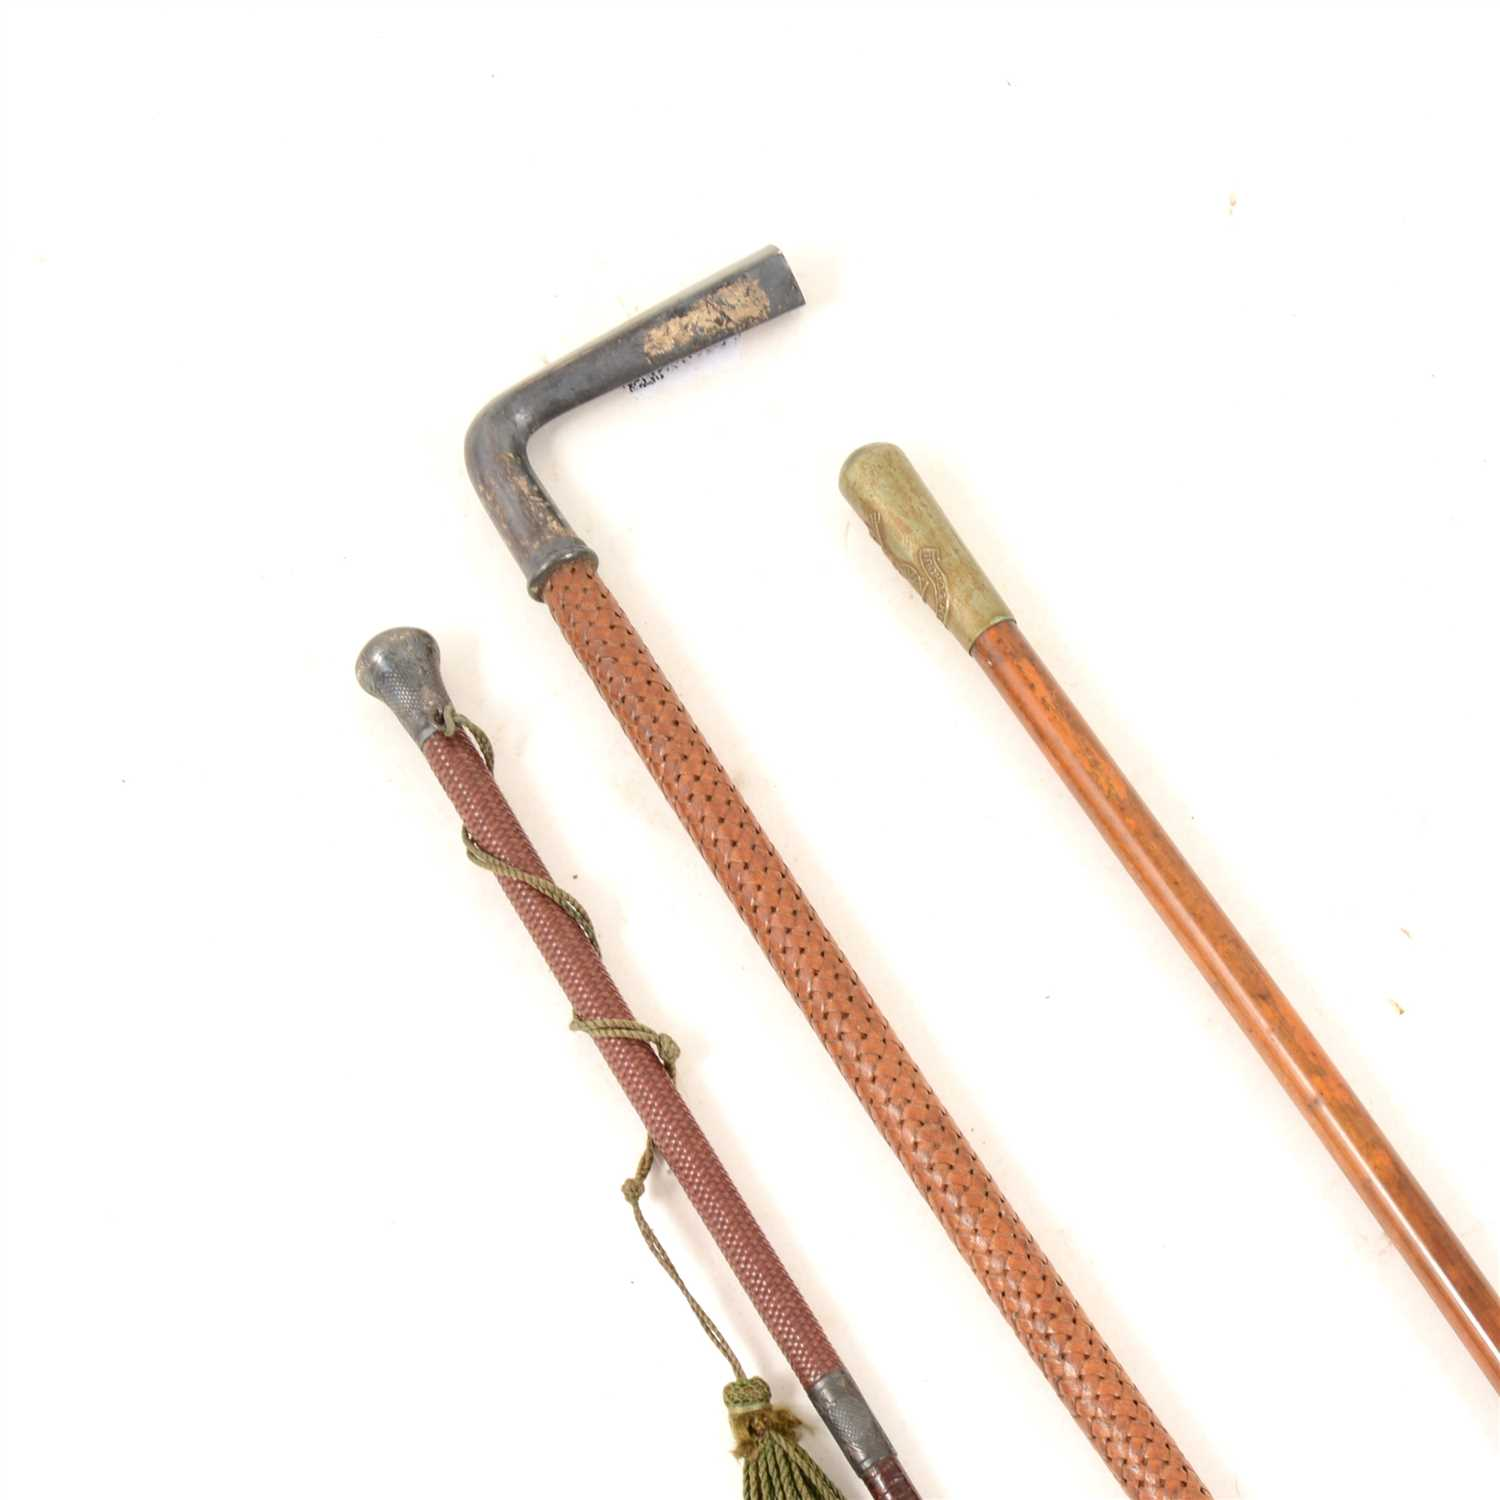 Lot 124-A swagger stick with metal pommel bearing the crest of O.T.C. Gresham School (Officers' Training Corps), overall 70cm